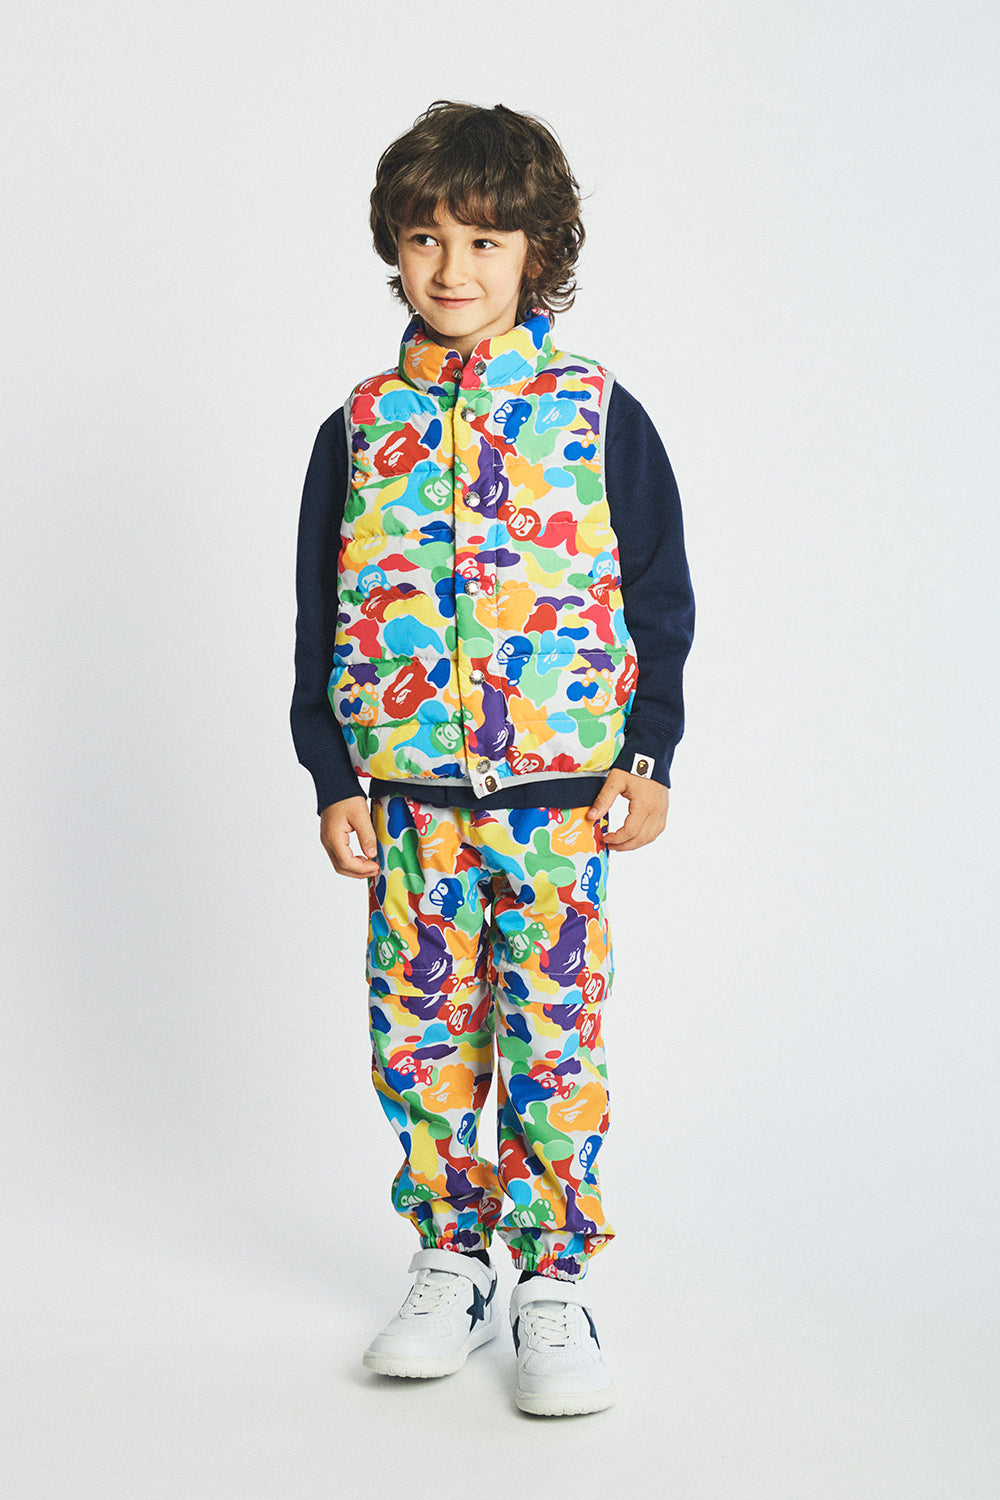 A BATHING APE 2019 AW KIDS' LOOKBOOK 13